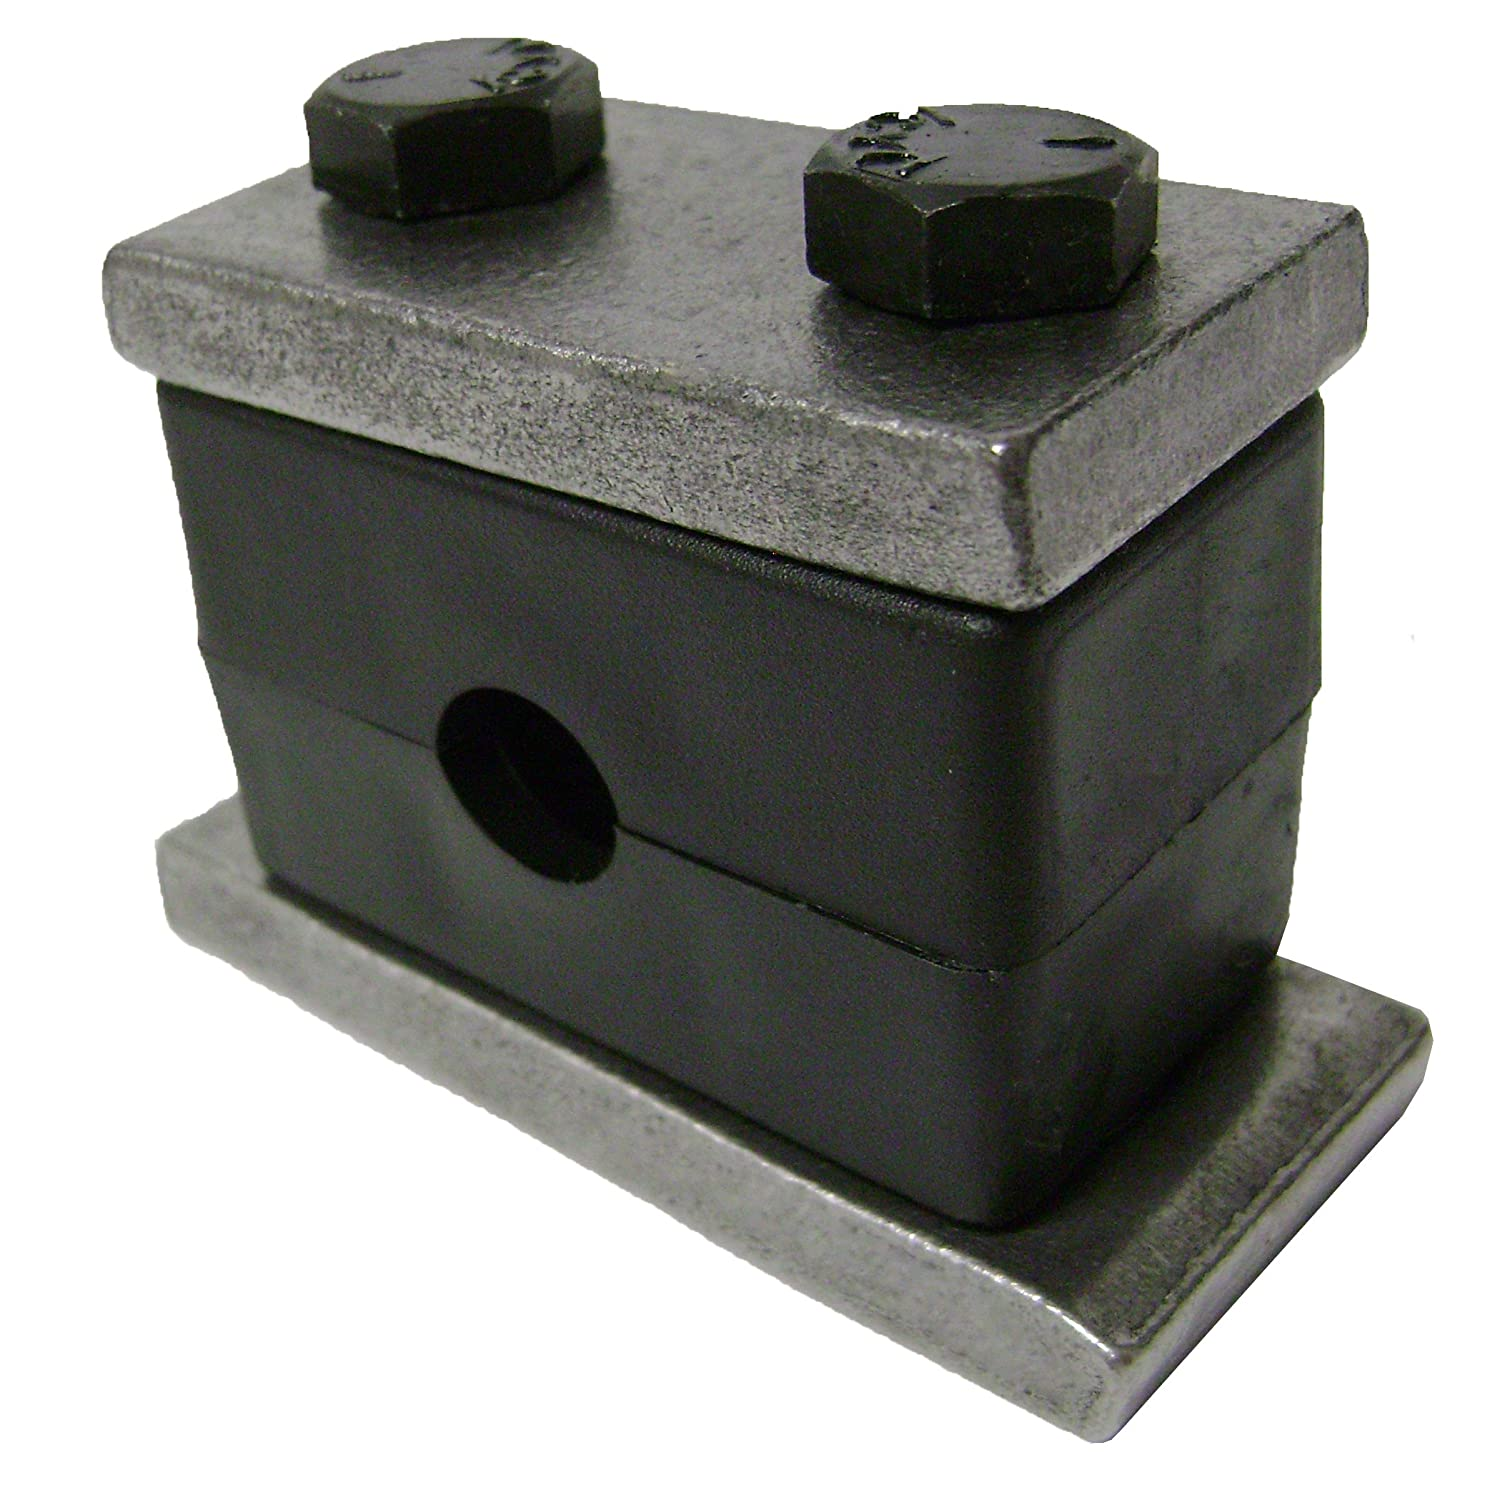 3//8 Pipe Size 3//8 Pipe Size Behringer Fluid /& Pipe Systems SH30675-PP Behringer Heavy Series Pipe Clamp Polypropylene with Plain Carbon Steel Hardware Weld Mounting